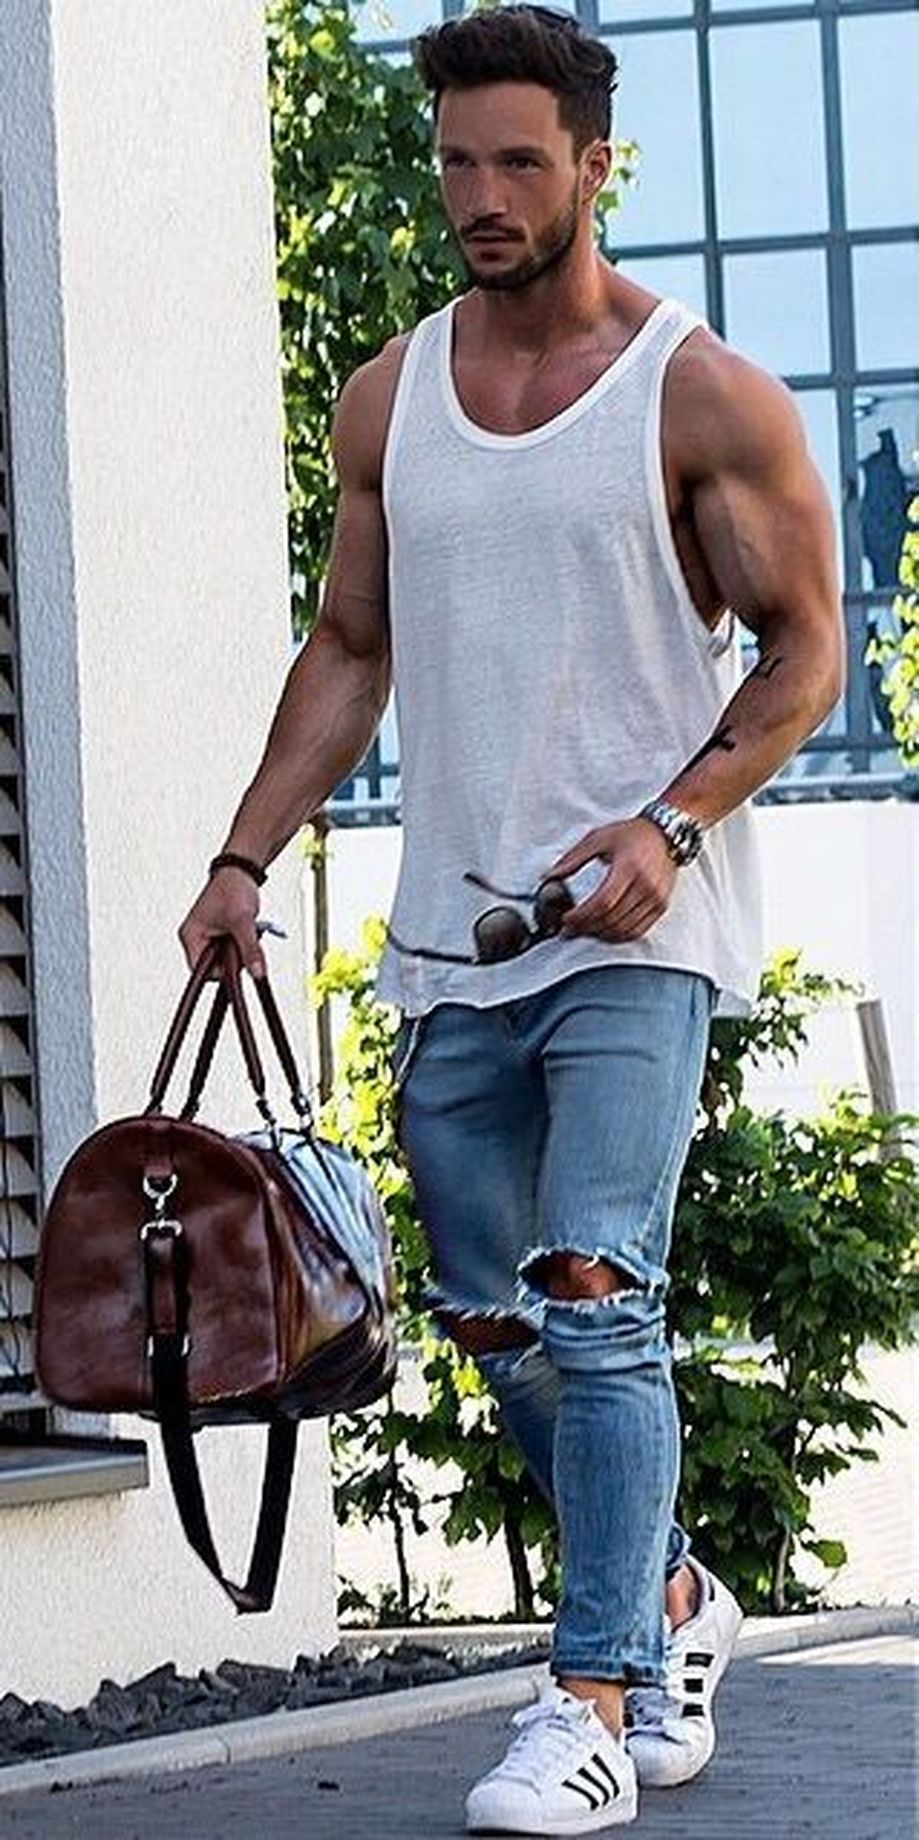 Cool Casual Men's Fashions Summer Outfits Ideas 3